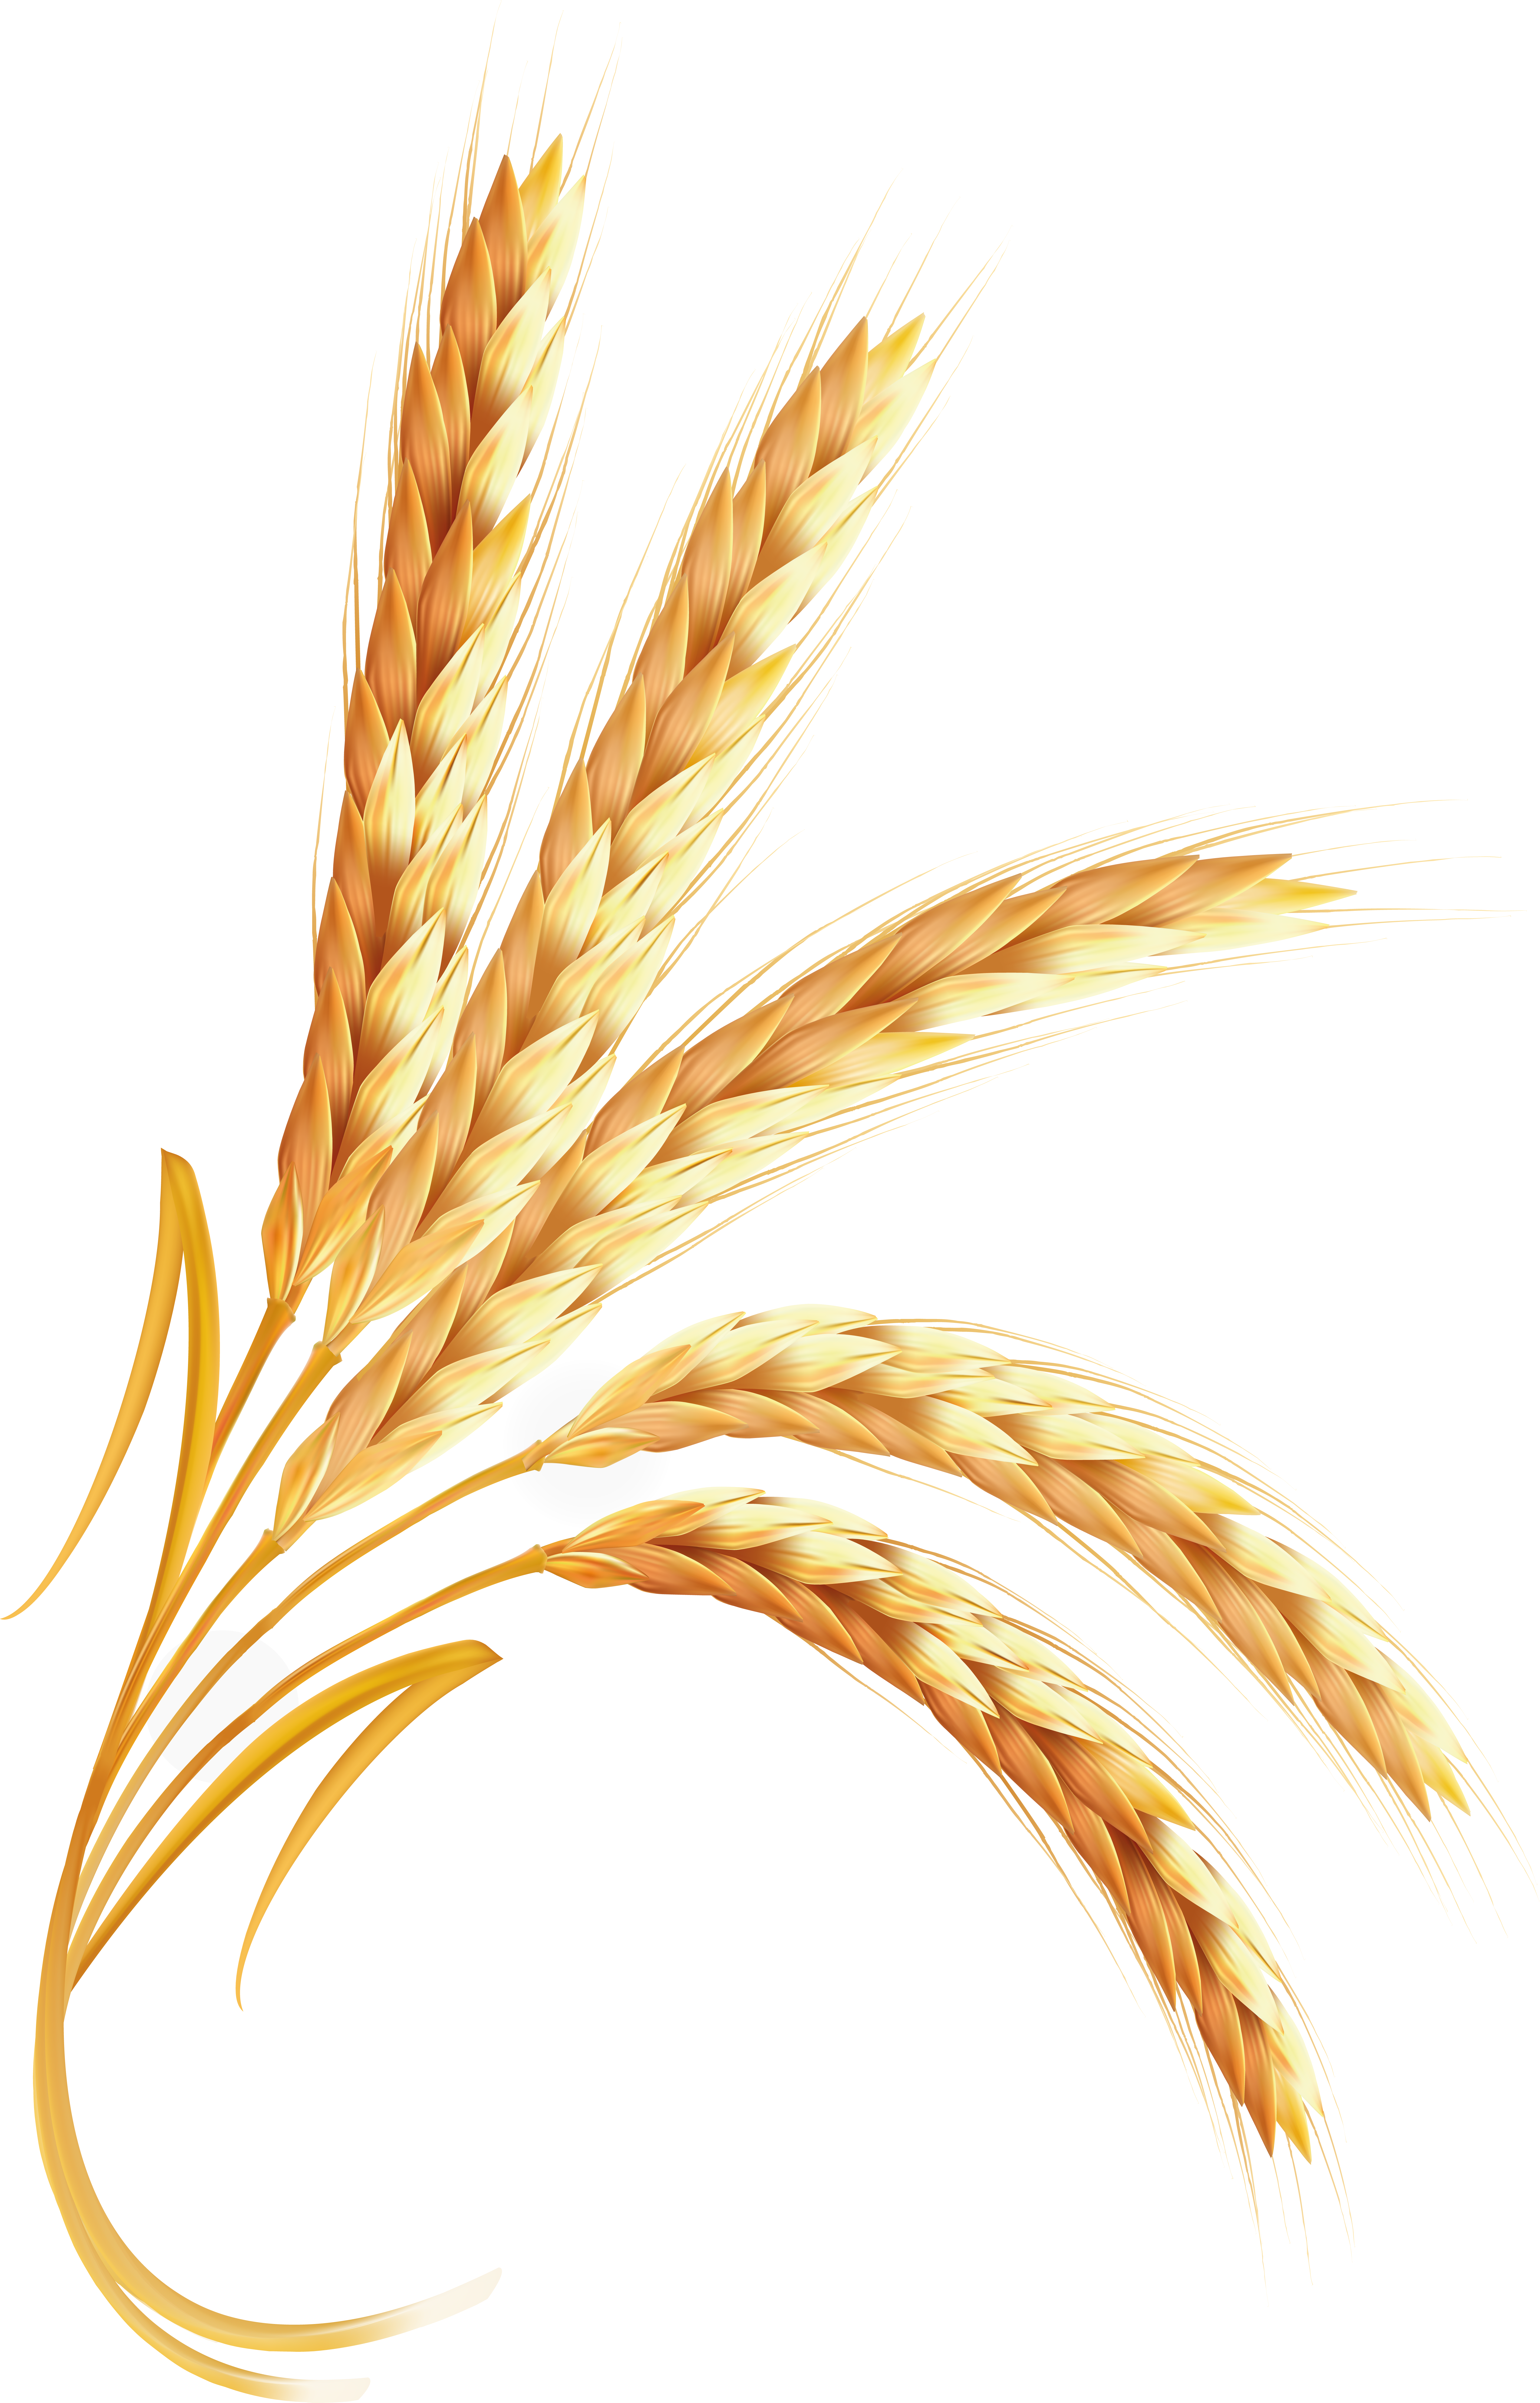 Wheat clipart grain bag. Png images free download